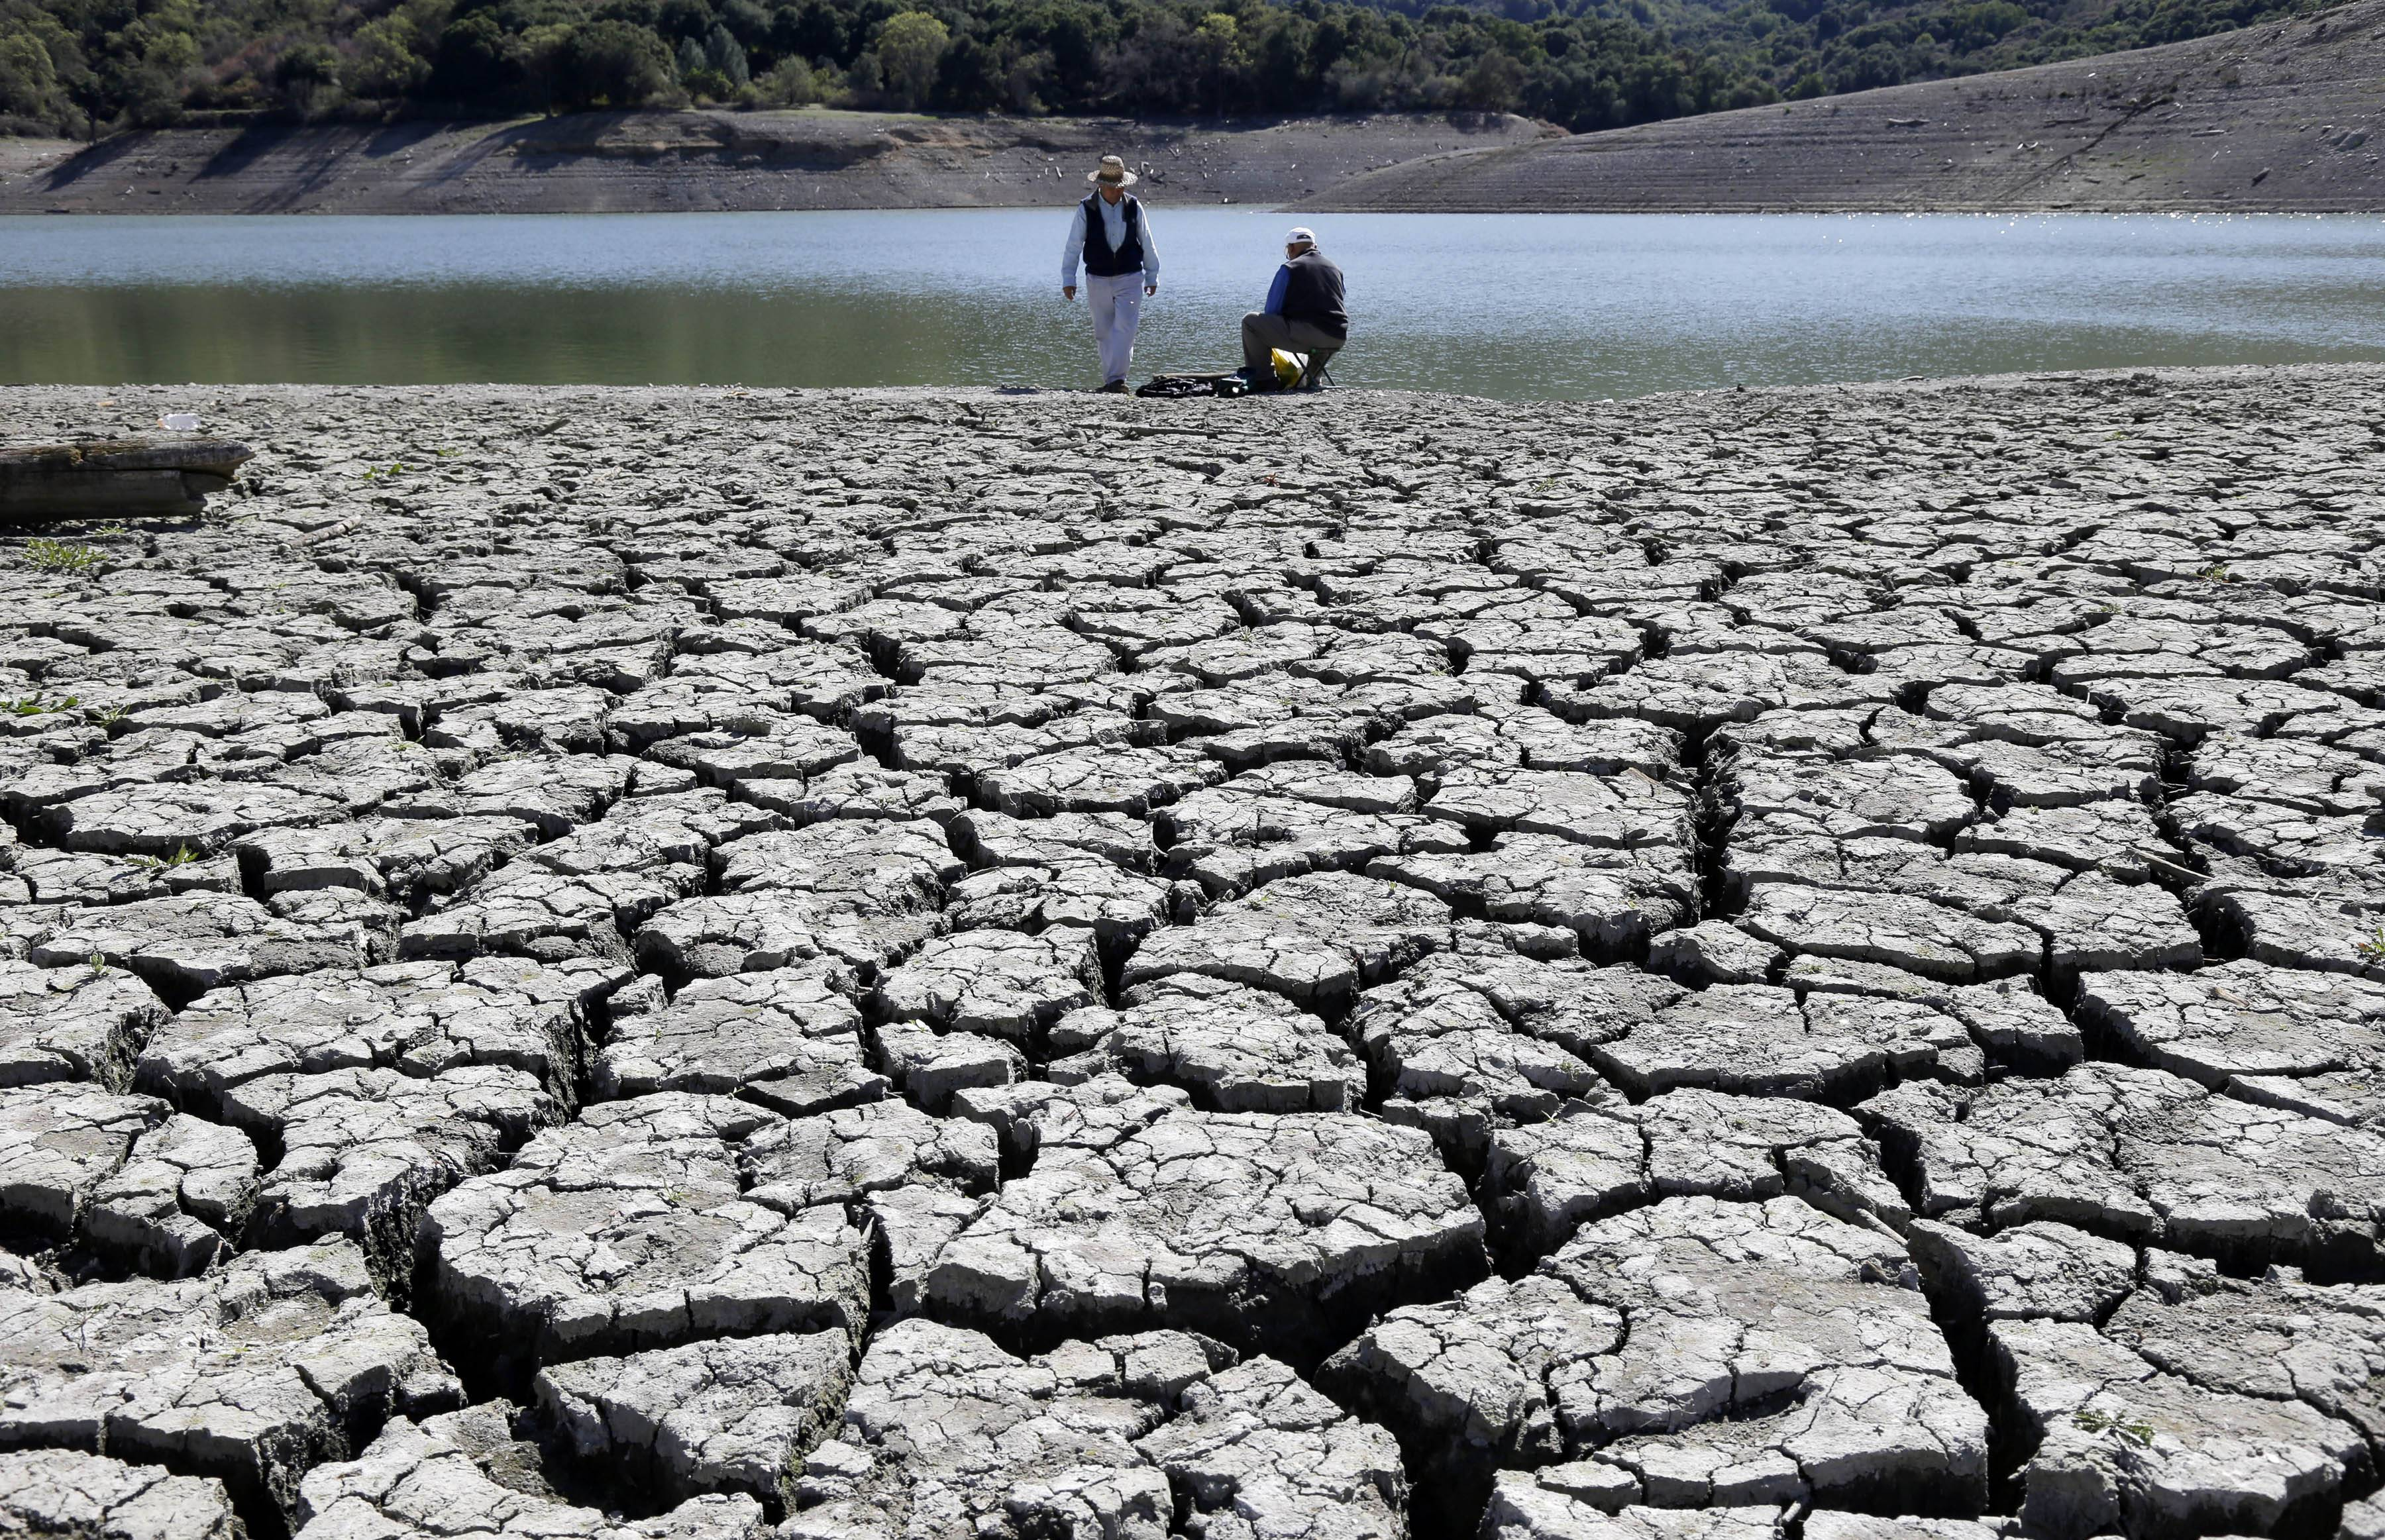 Cracks in the dry bed of the Stevens Creek Reservoir in Cupertino, Calif. The Obama administration is more certain than ever that global warming is changing Americans' daily lives and will worsen — conclusions that scientists detail in a massive federal report released Tuesday.